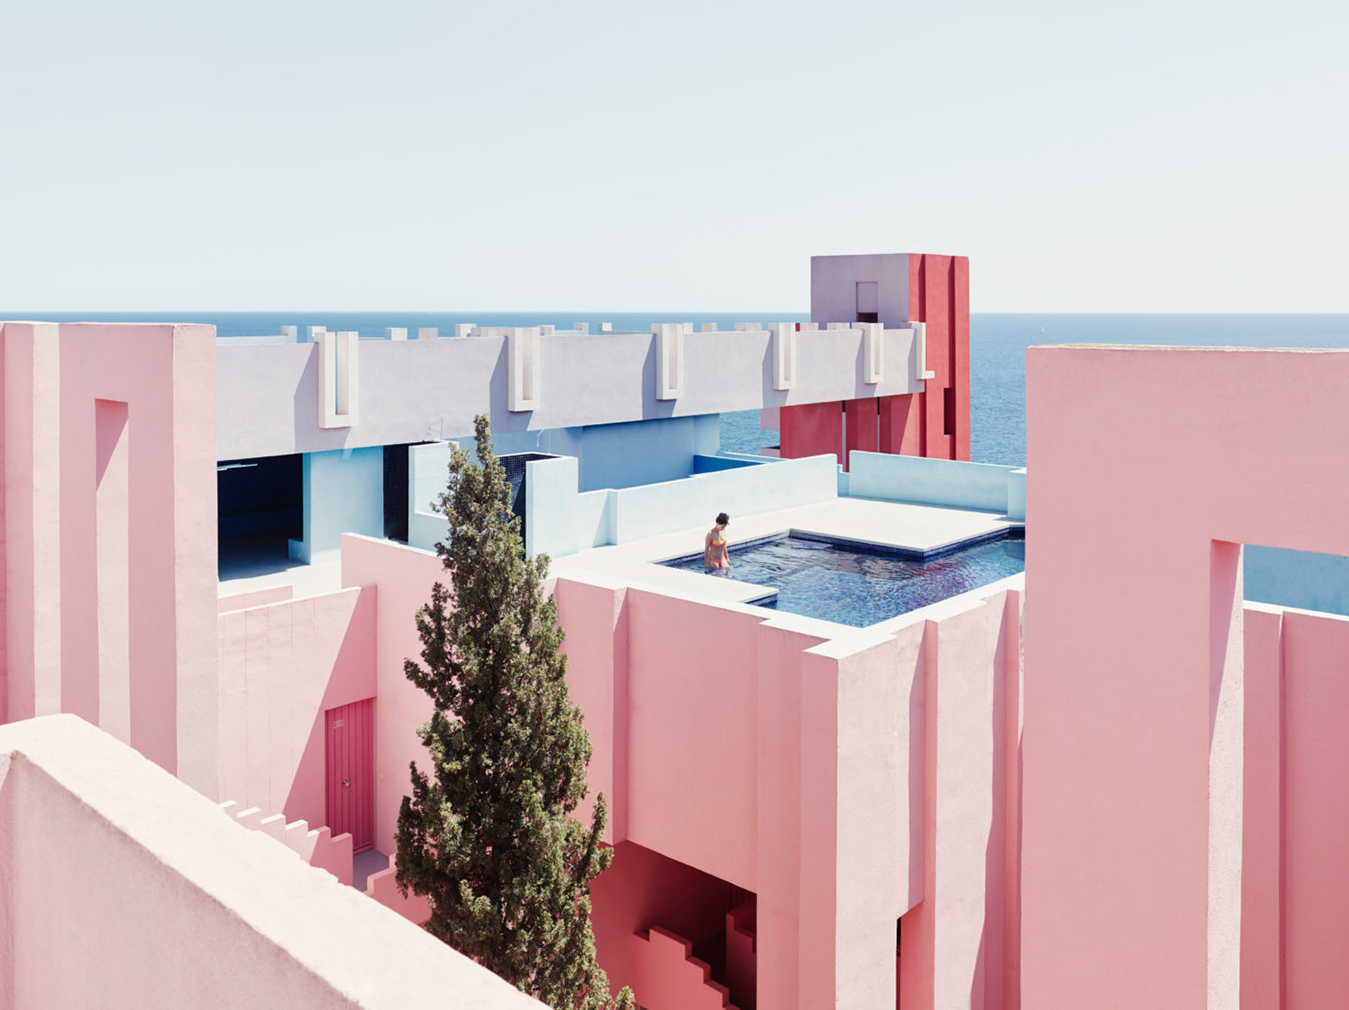 spaces to photograph before you die, including the Muralla Roja in Spain, designed by Ricardo Bofill